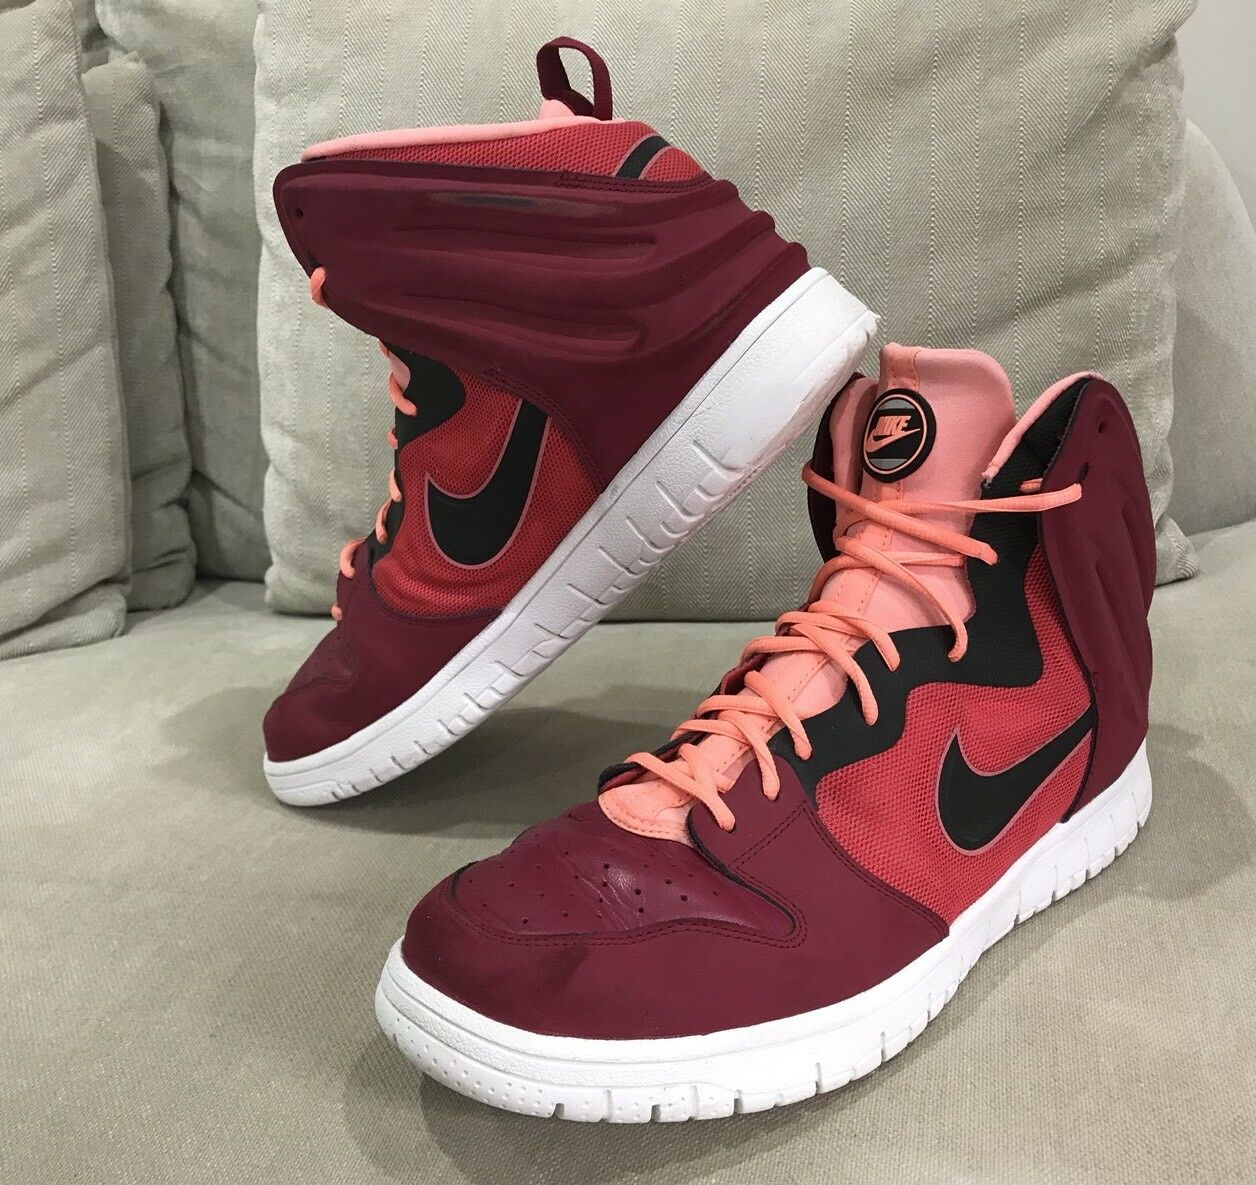 Nike Dunk Free MENS US 15 Sneakers Hi Top Shoes Trainers Basketball 33cm best-selling model of the brand